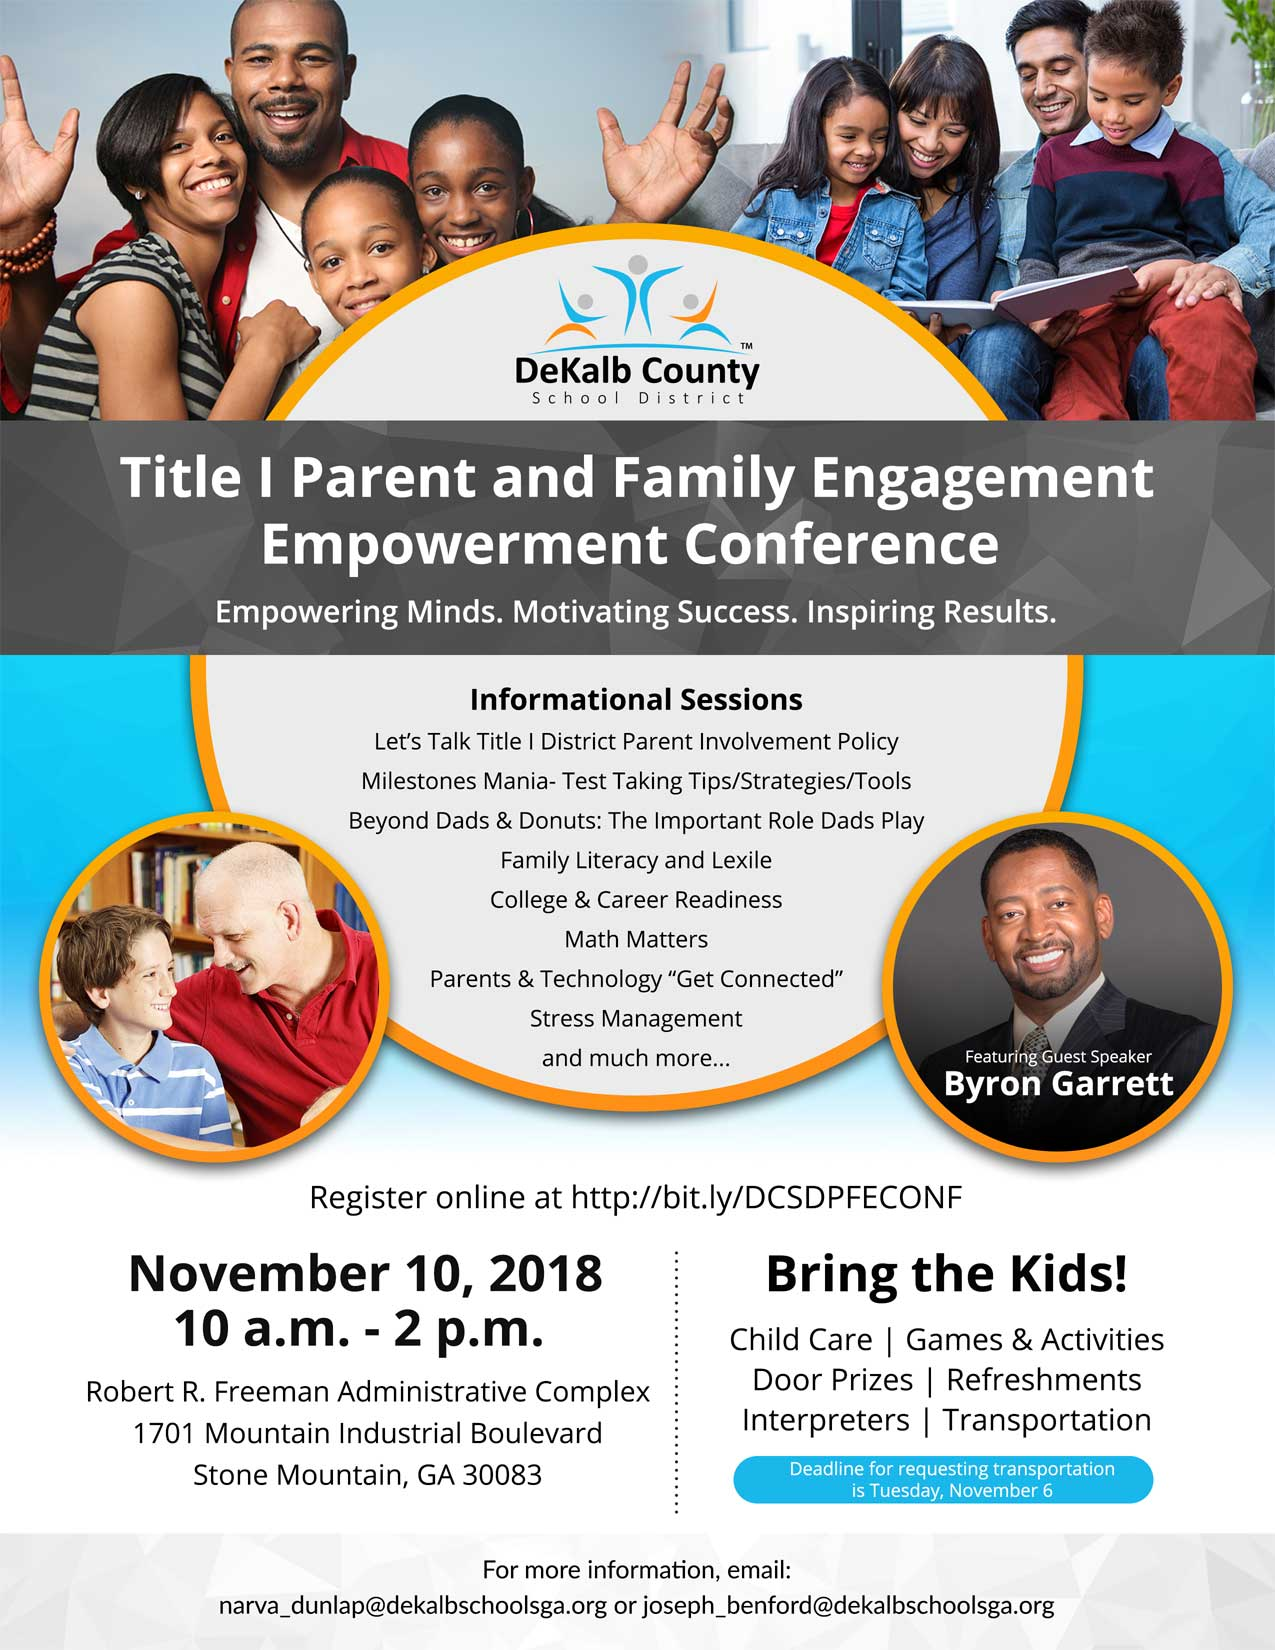 Title 1 parent and family engagement conference flyer